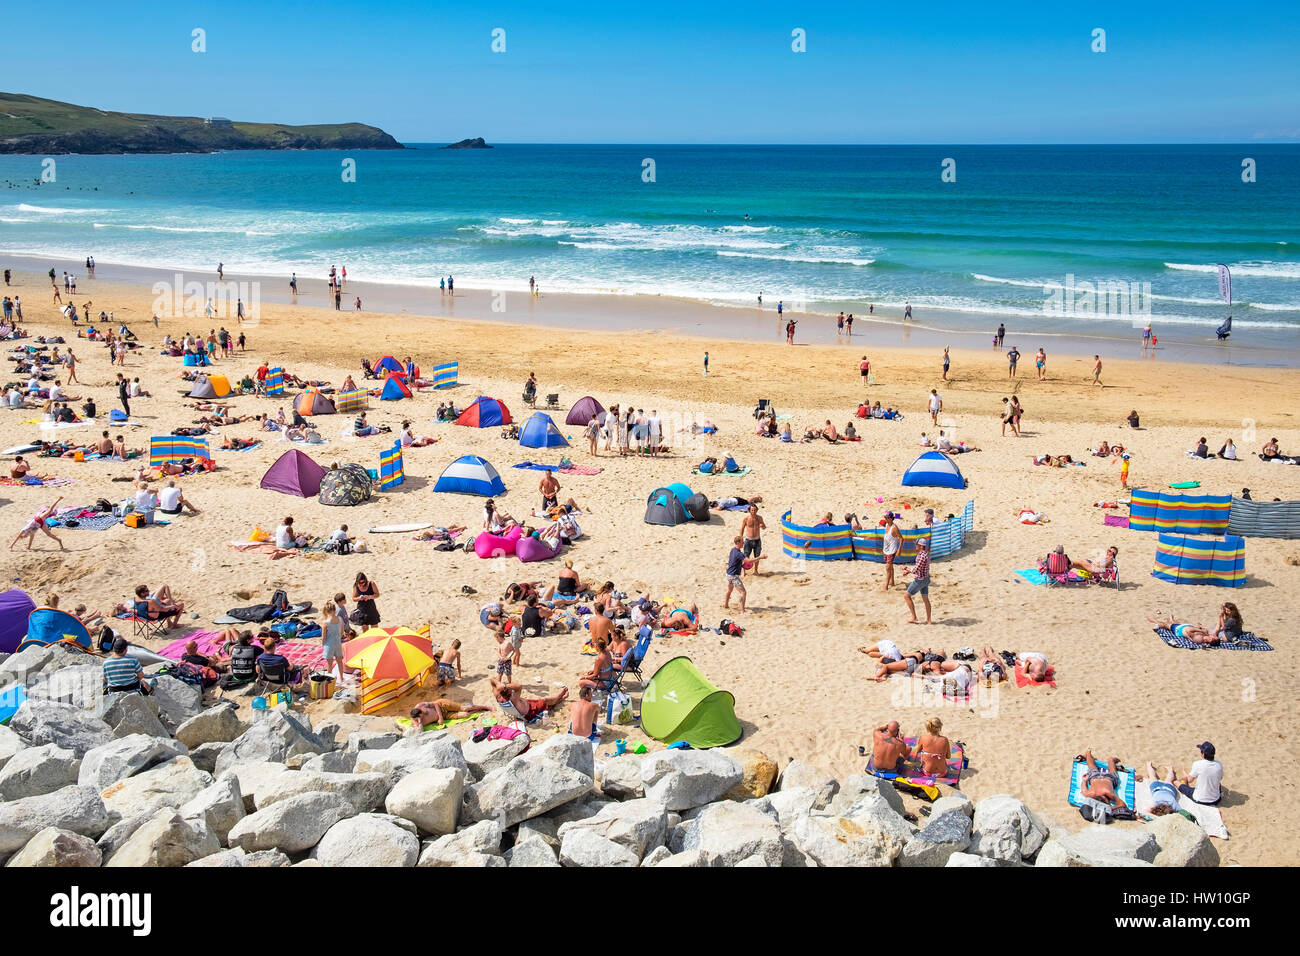 summertime at fistral beach in newquay, cornwall, england, uk, - Stock Image